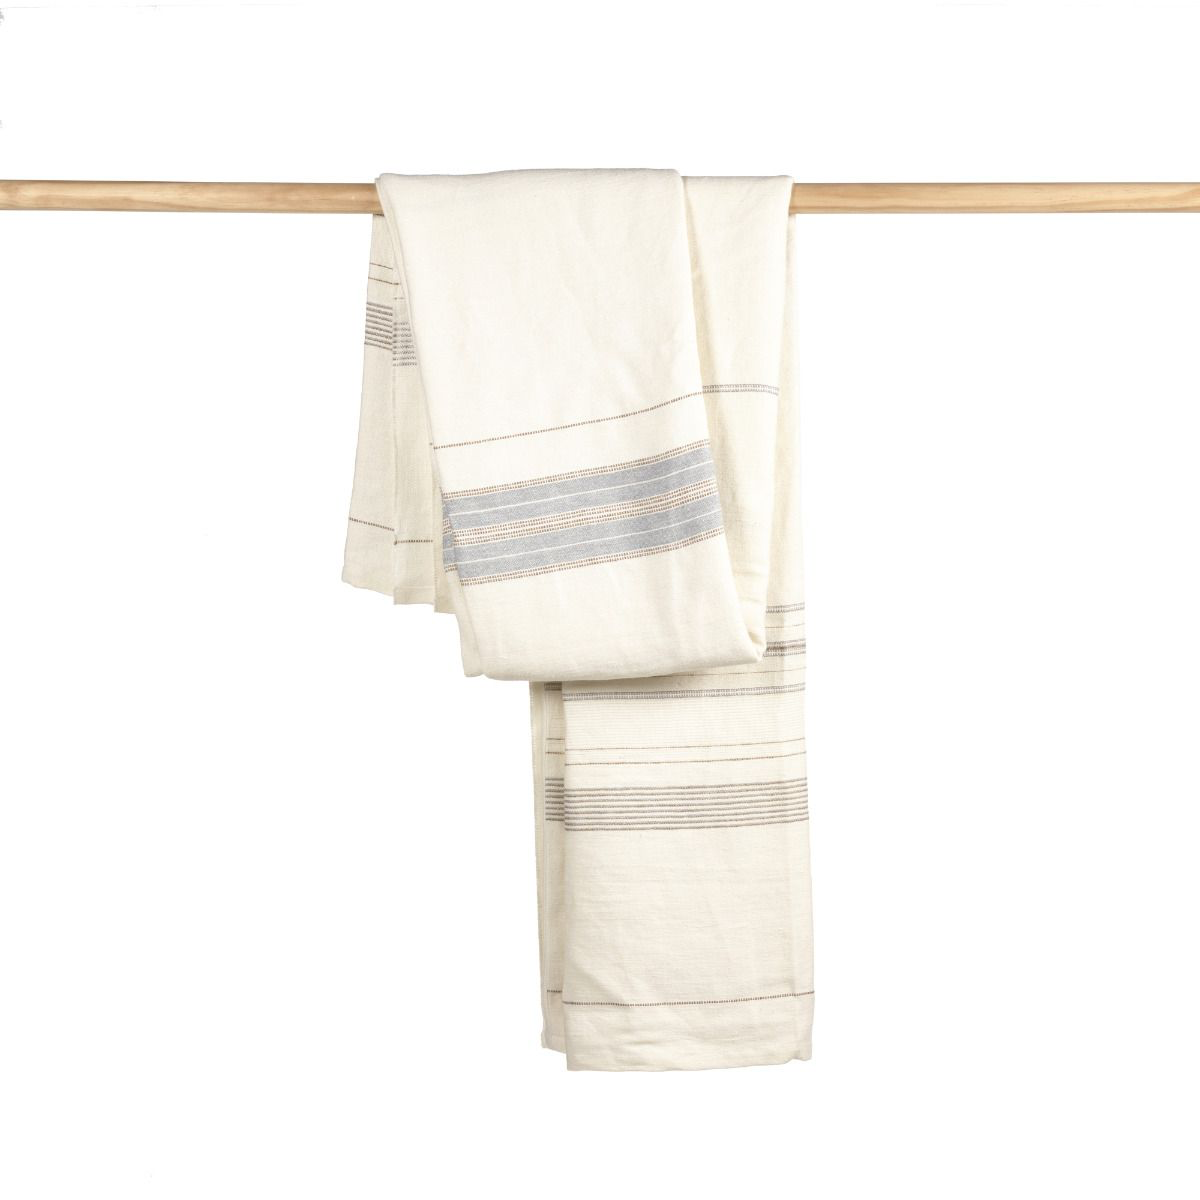 propriano coverlet, libeco, blanket | throw, - adorn.house